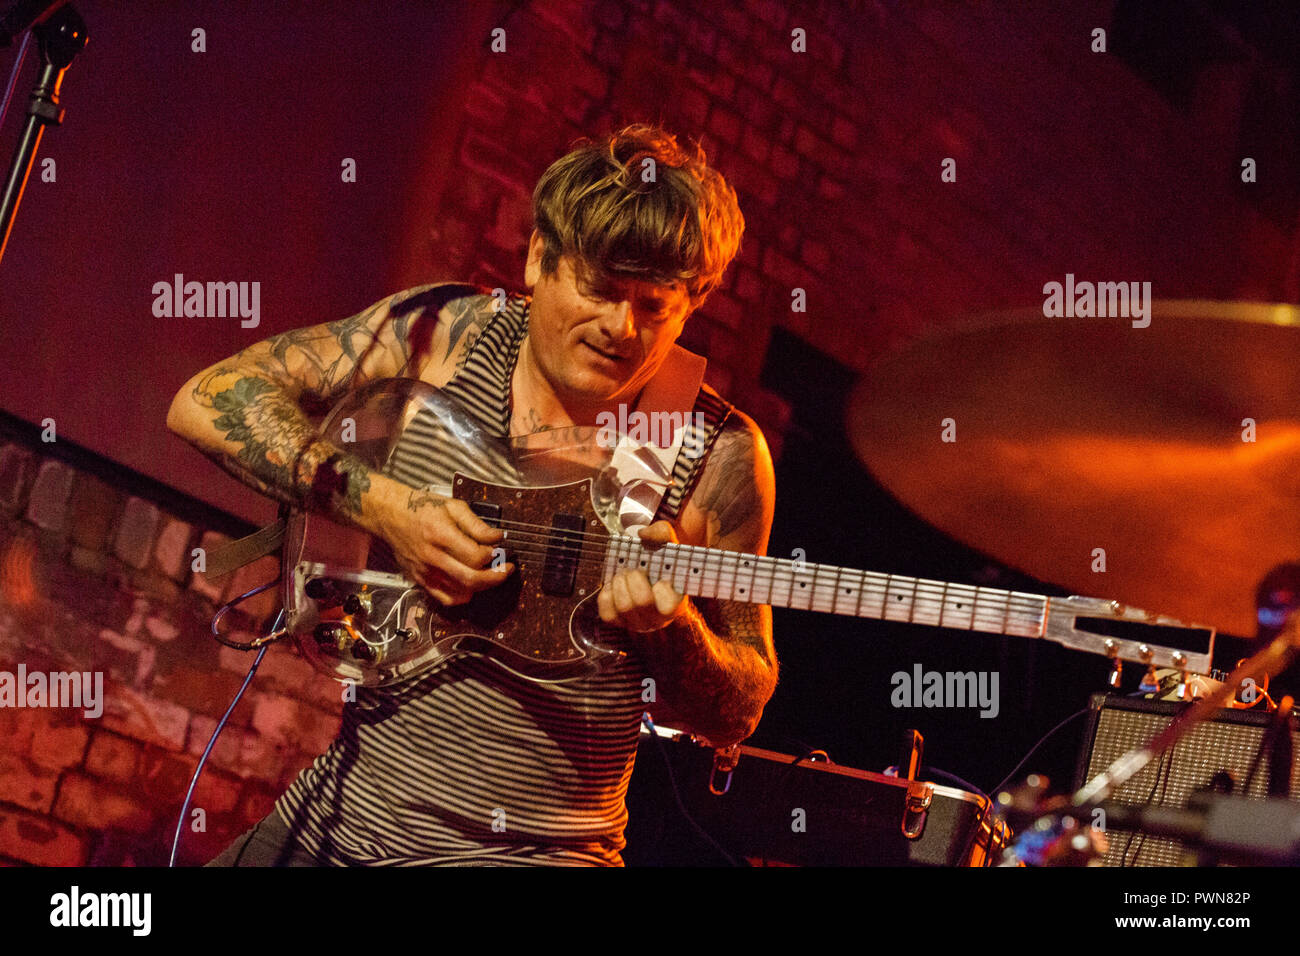 Oh Sees (Thee Oh Sees) John Dwyer - 12th July 2018 - Boiler Shop Newcastle - Live concert performance - Stock Image